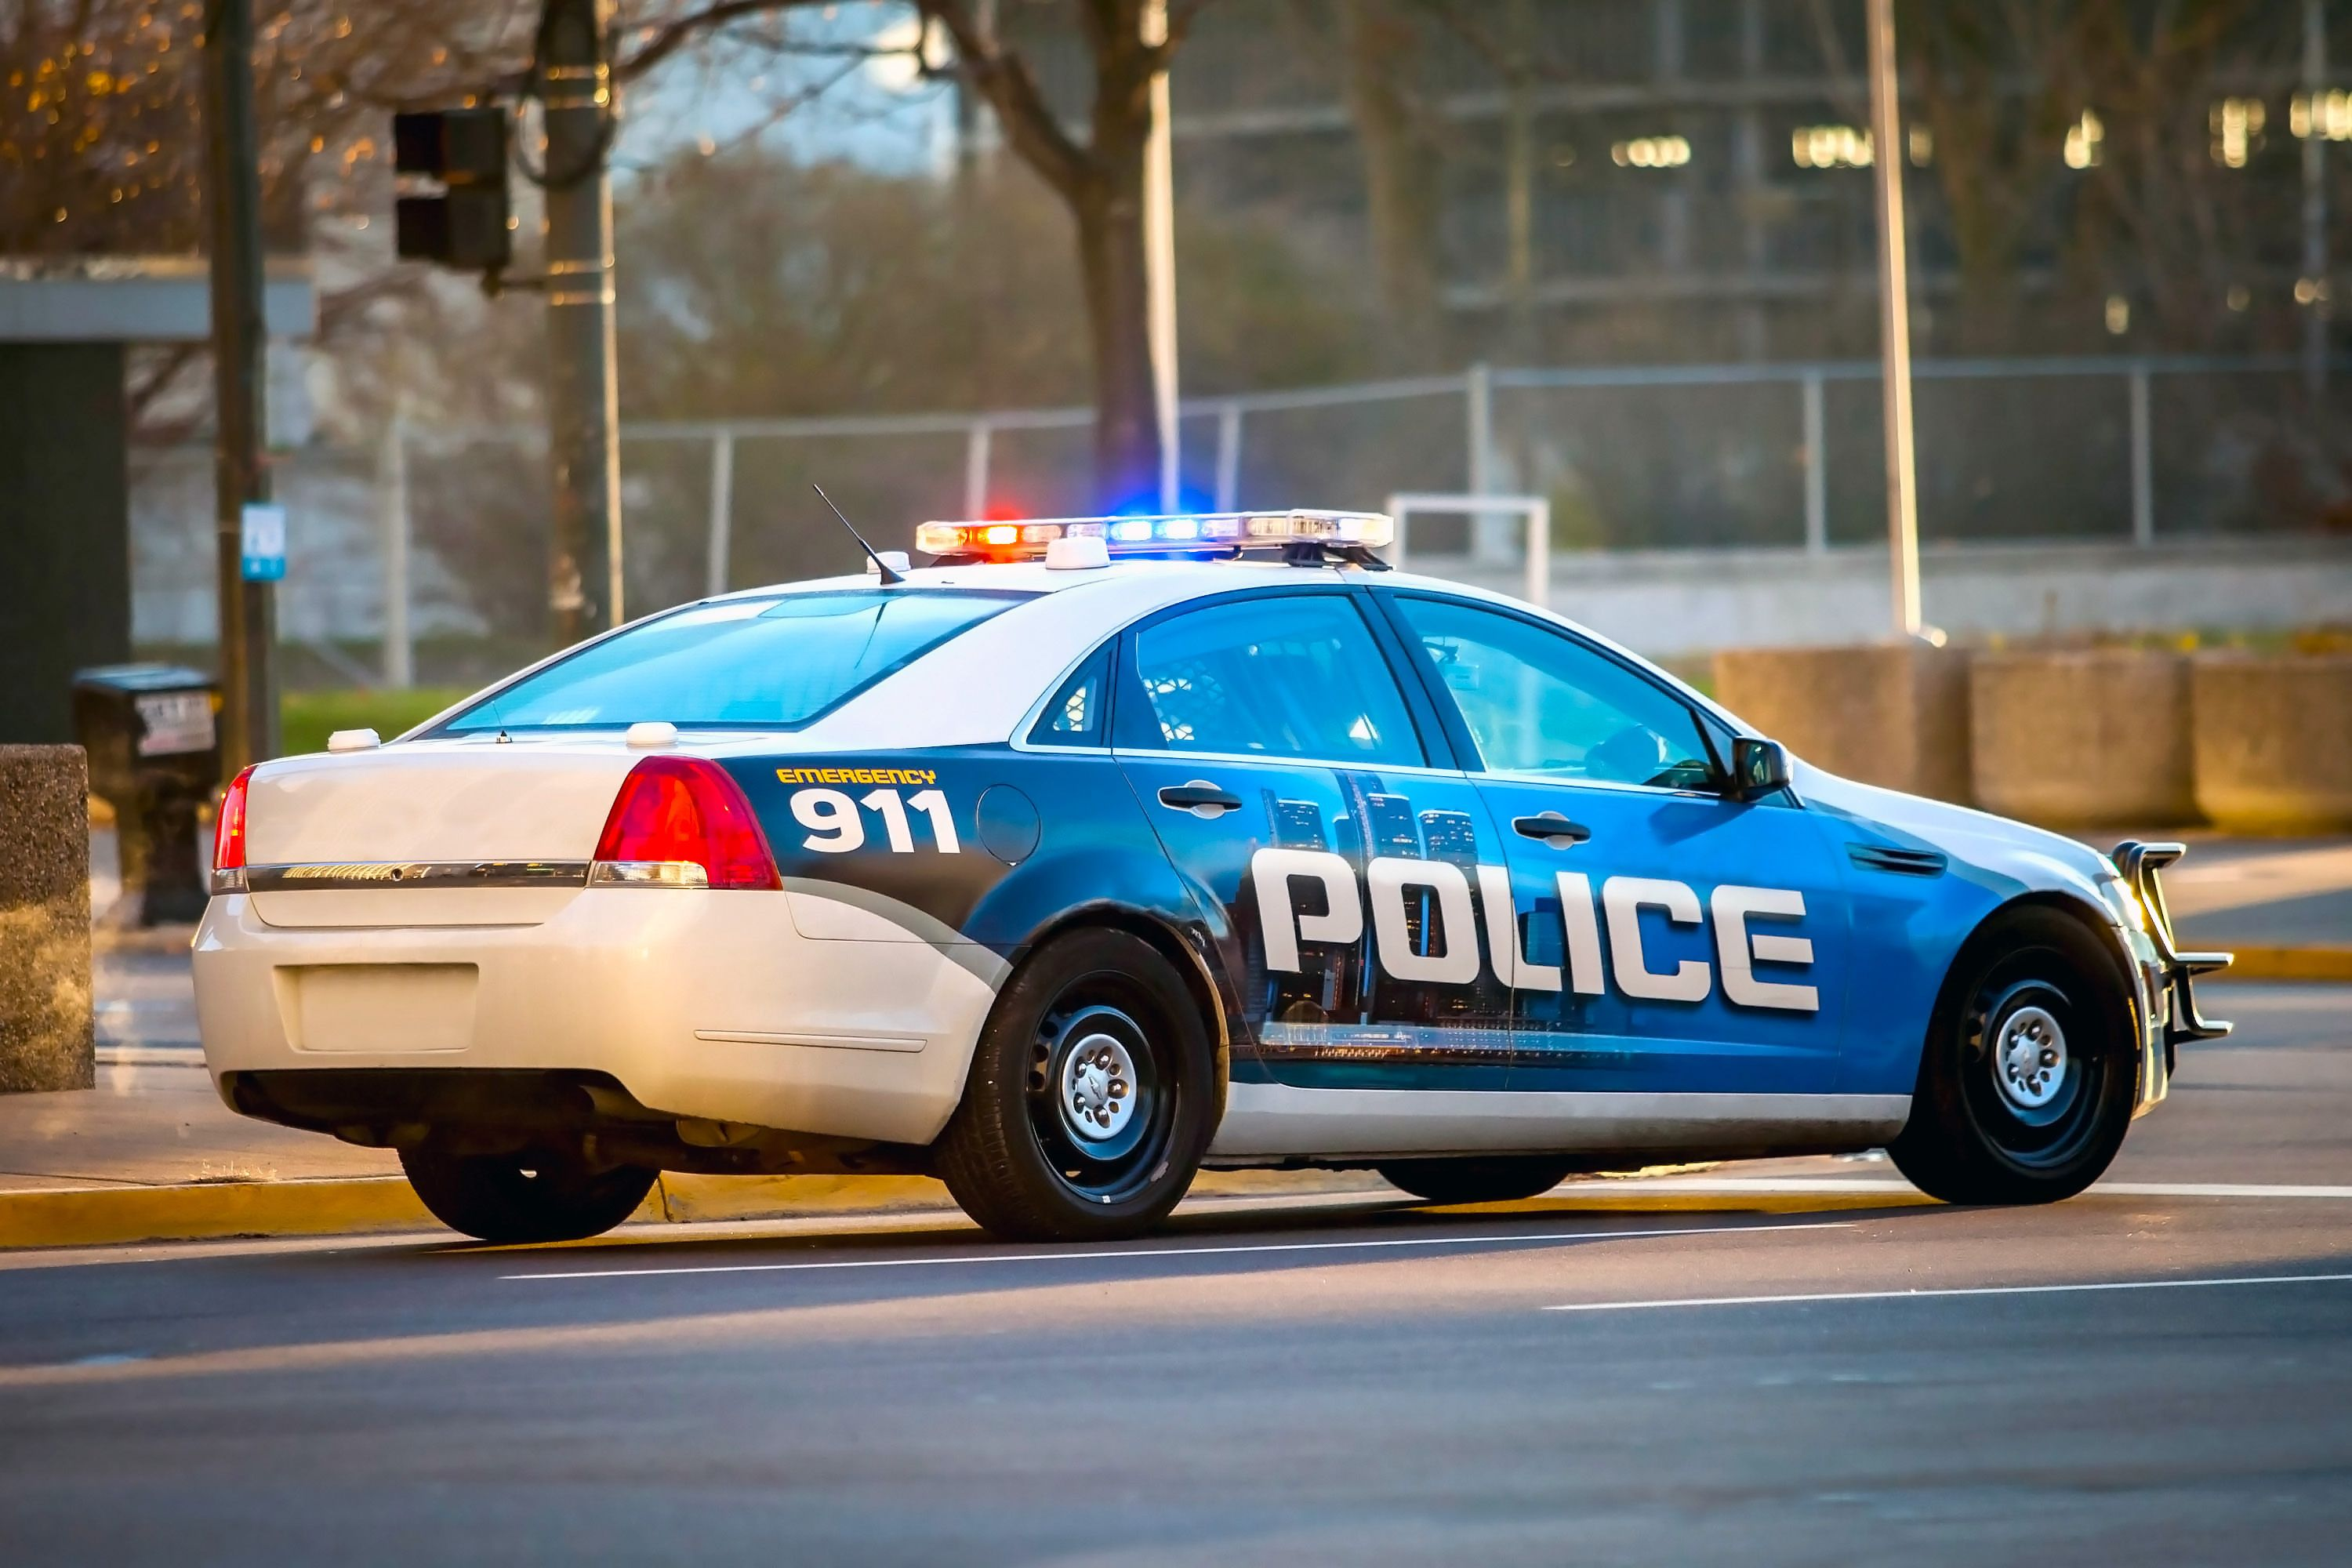 A police car driving through the streets. | Source: Shutterstock